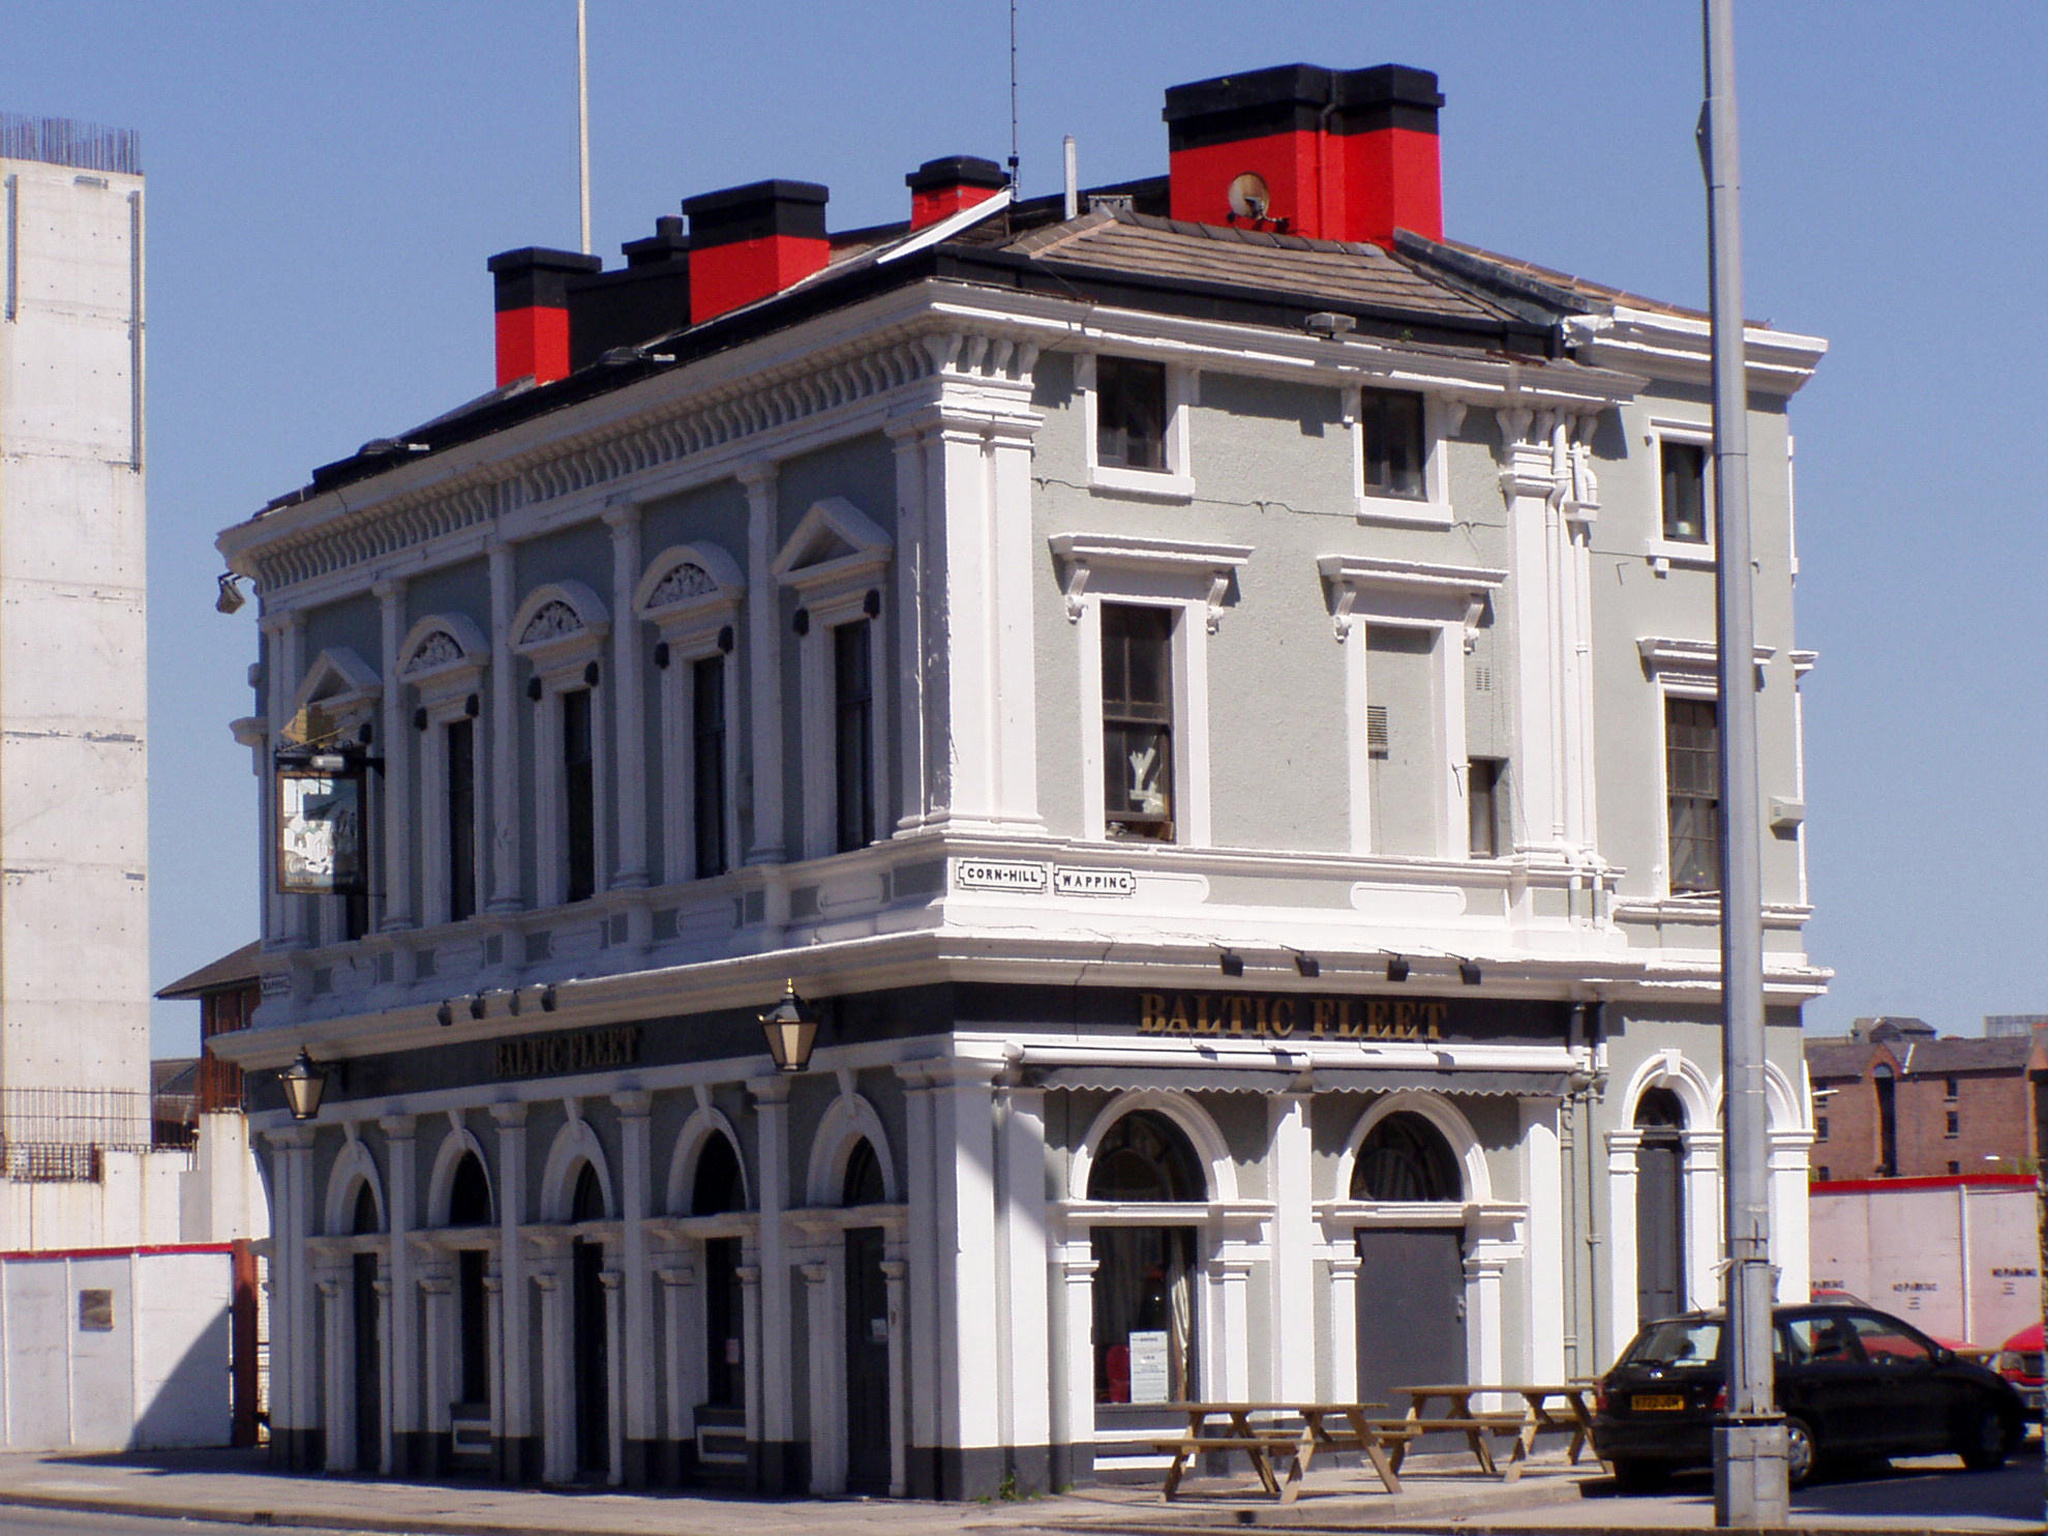 The exterior of the Baltic Fleet in Liverpool